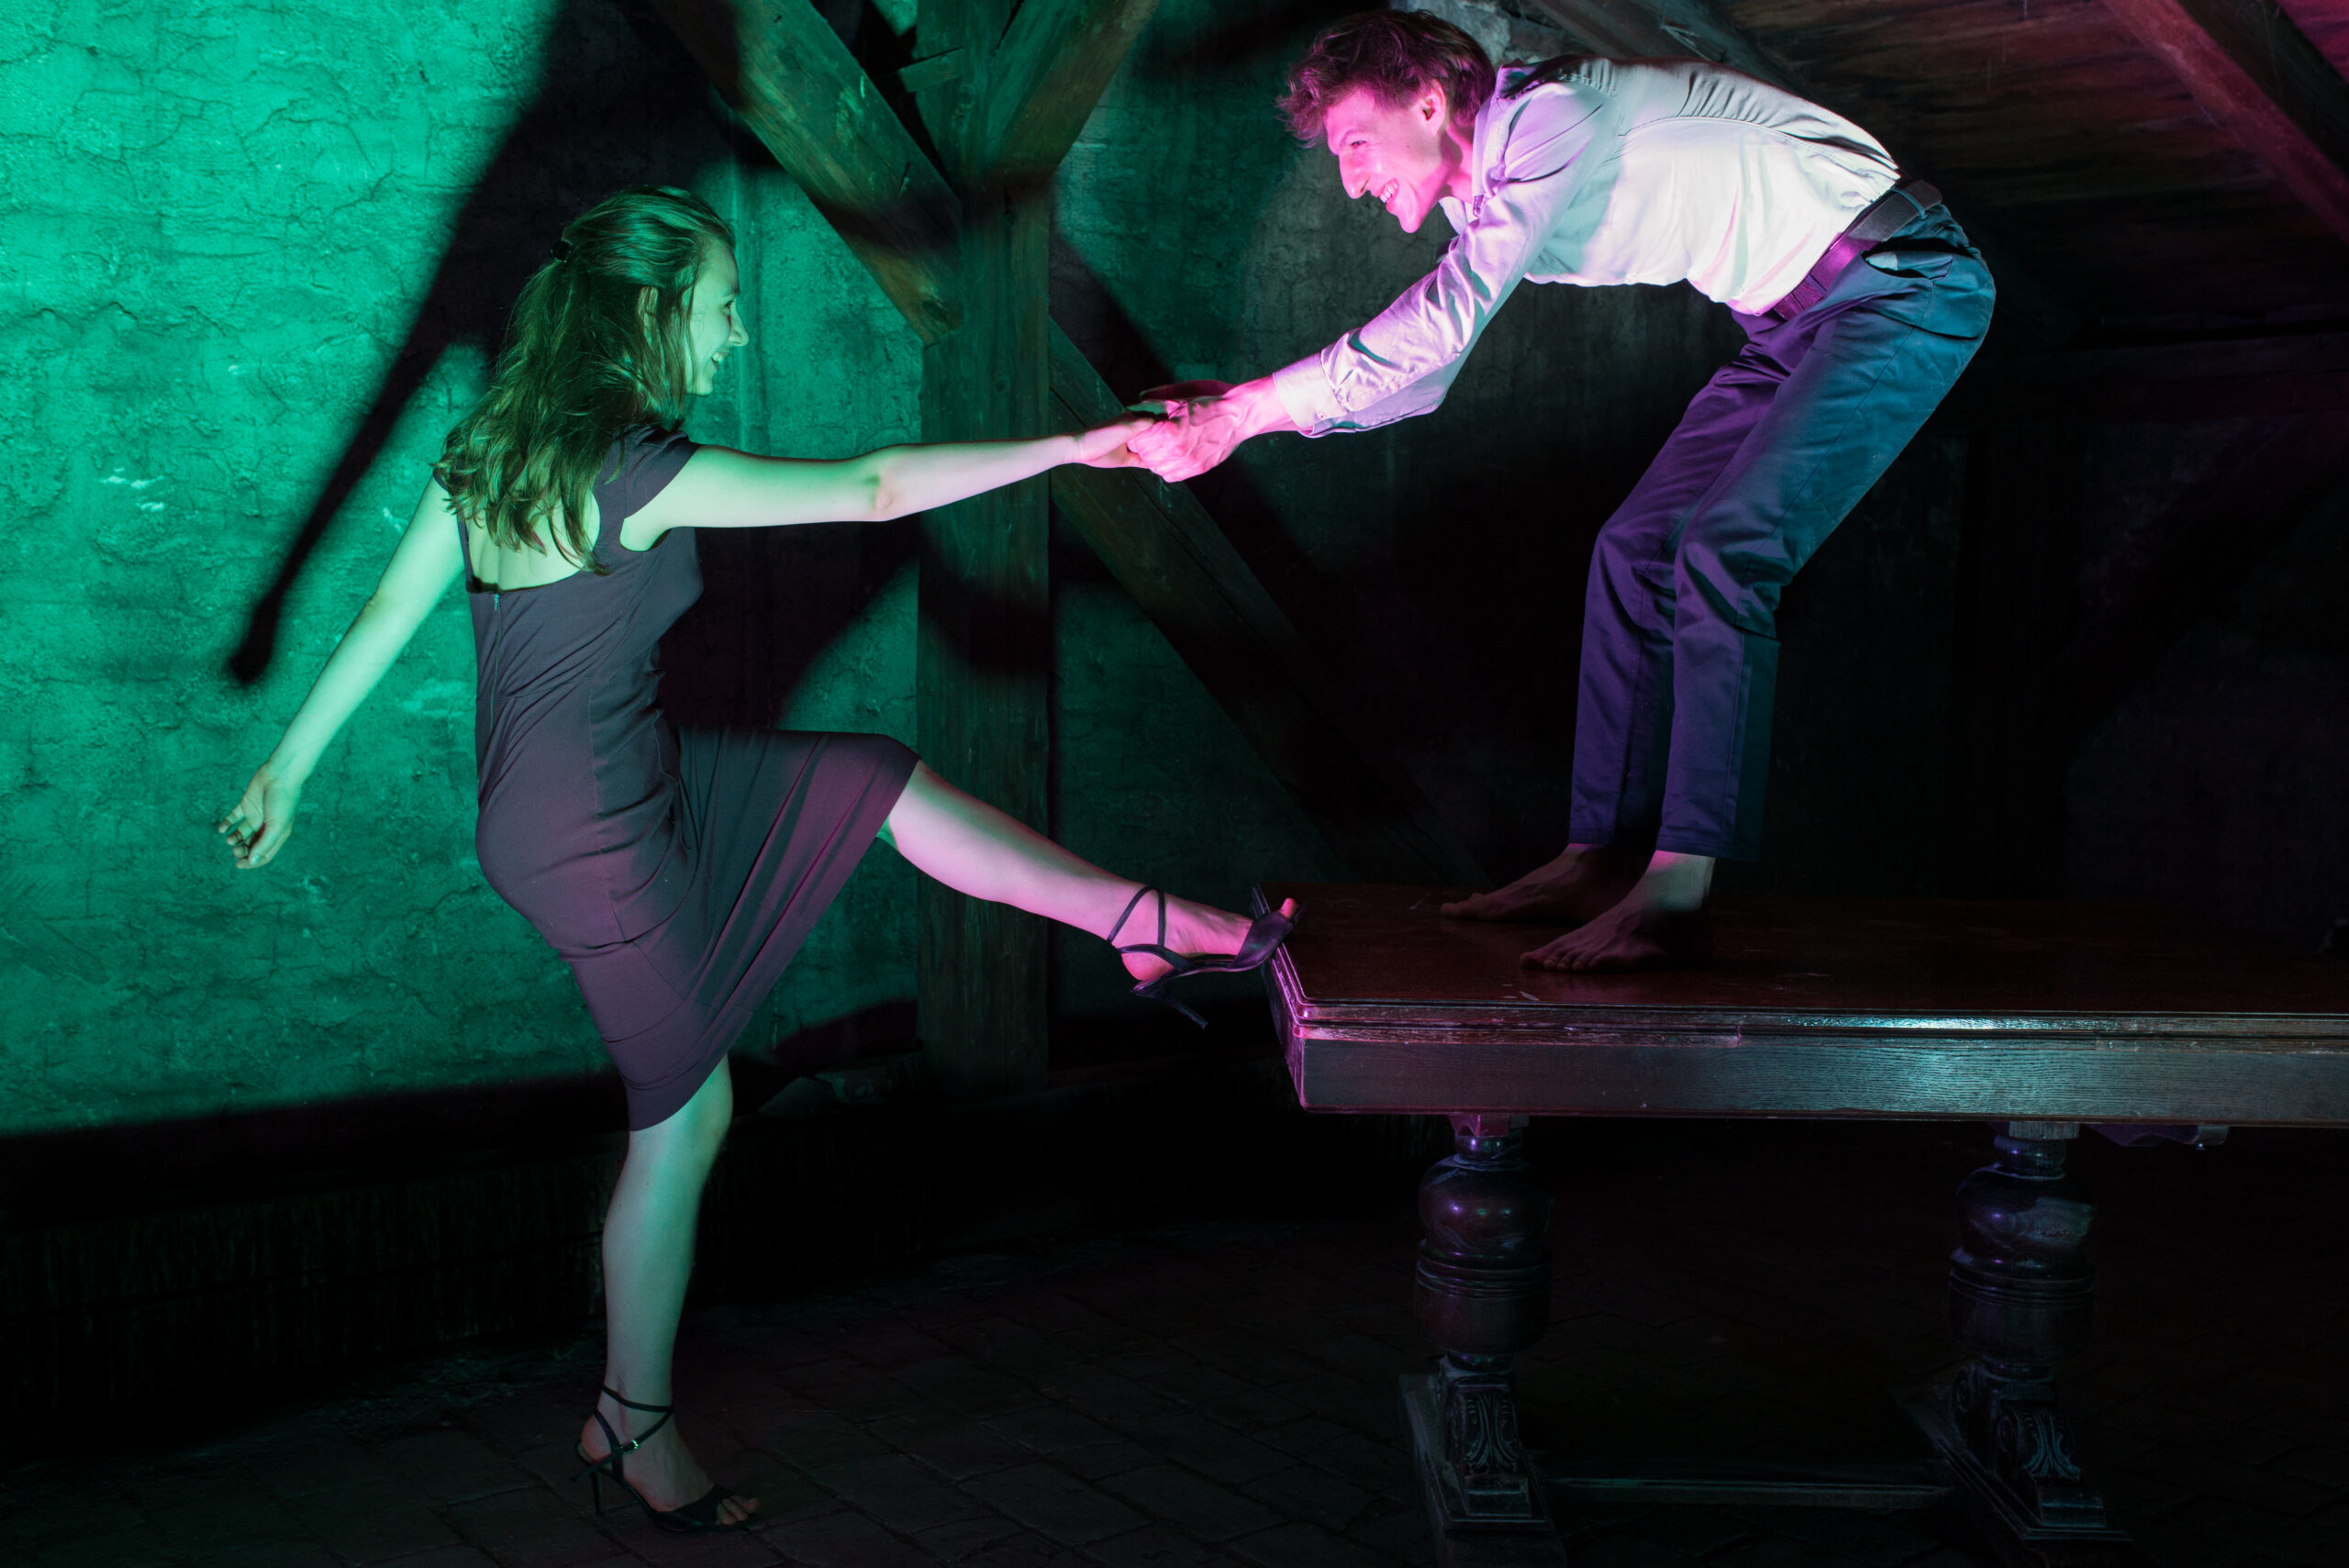 Tango from the basis in September!